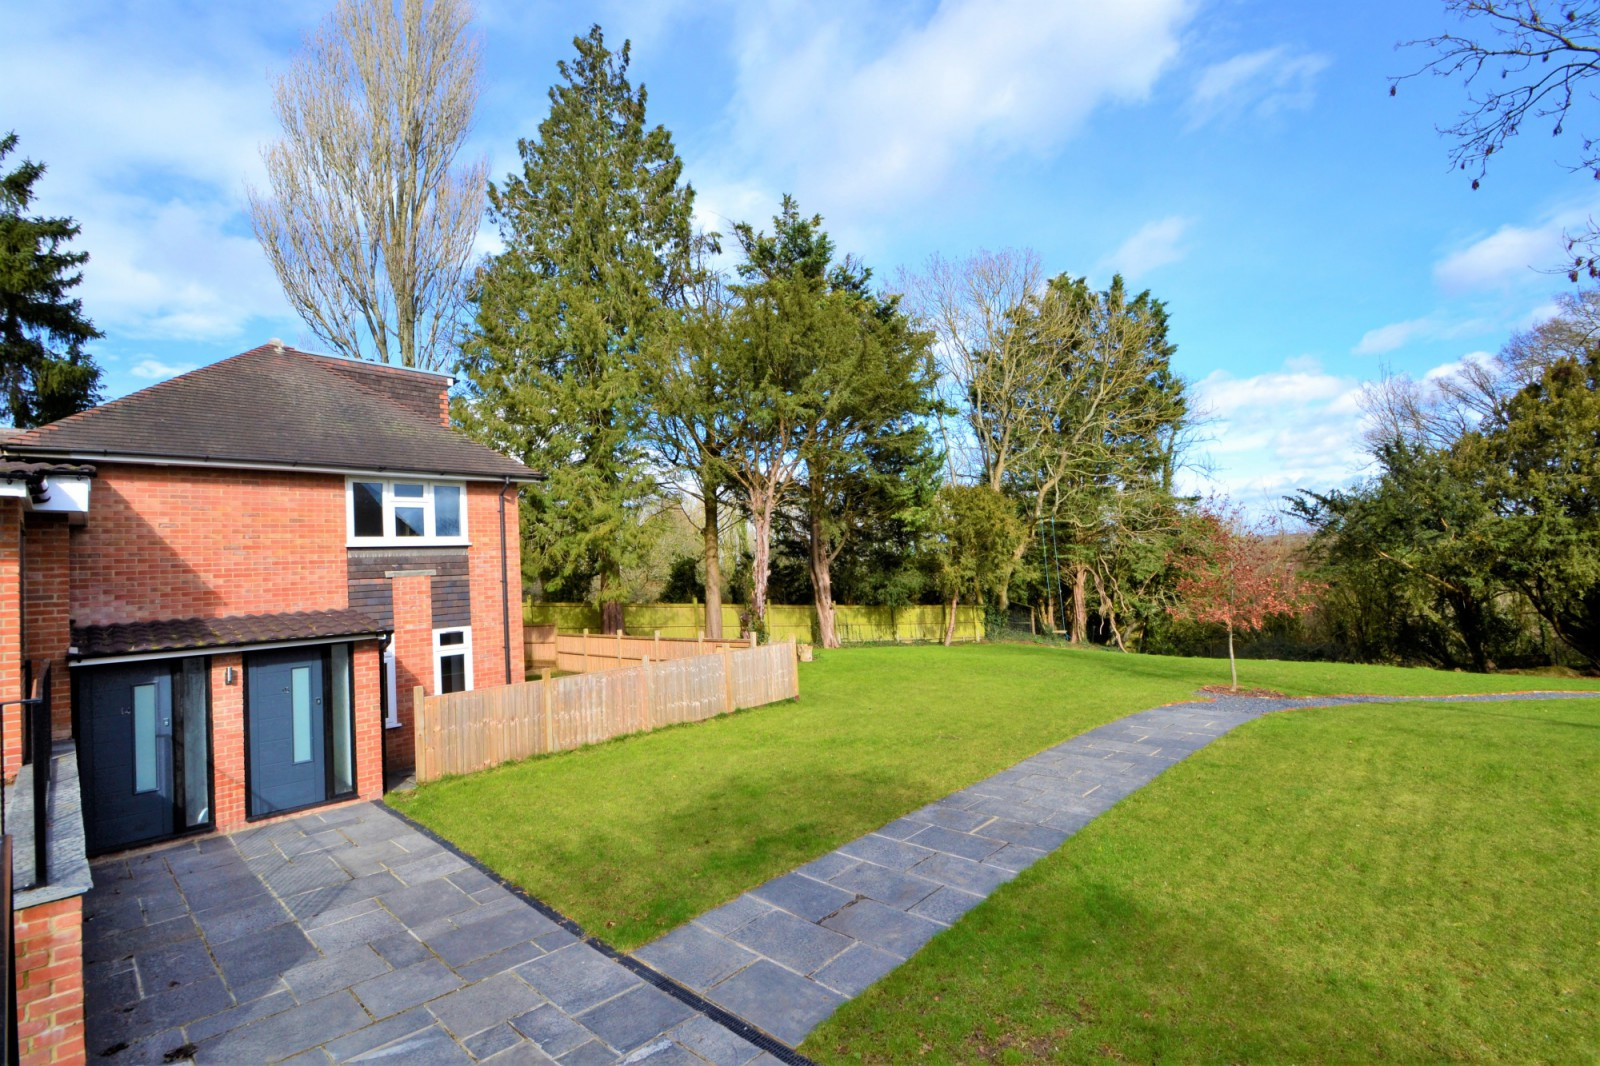 14 Bishops Retreat, Southdown Road, Shawford, Winchester SO21 2BY